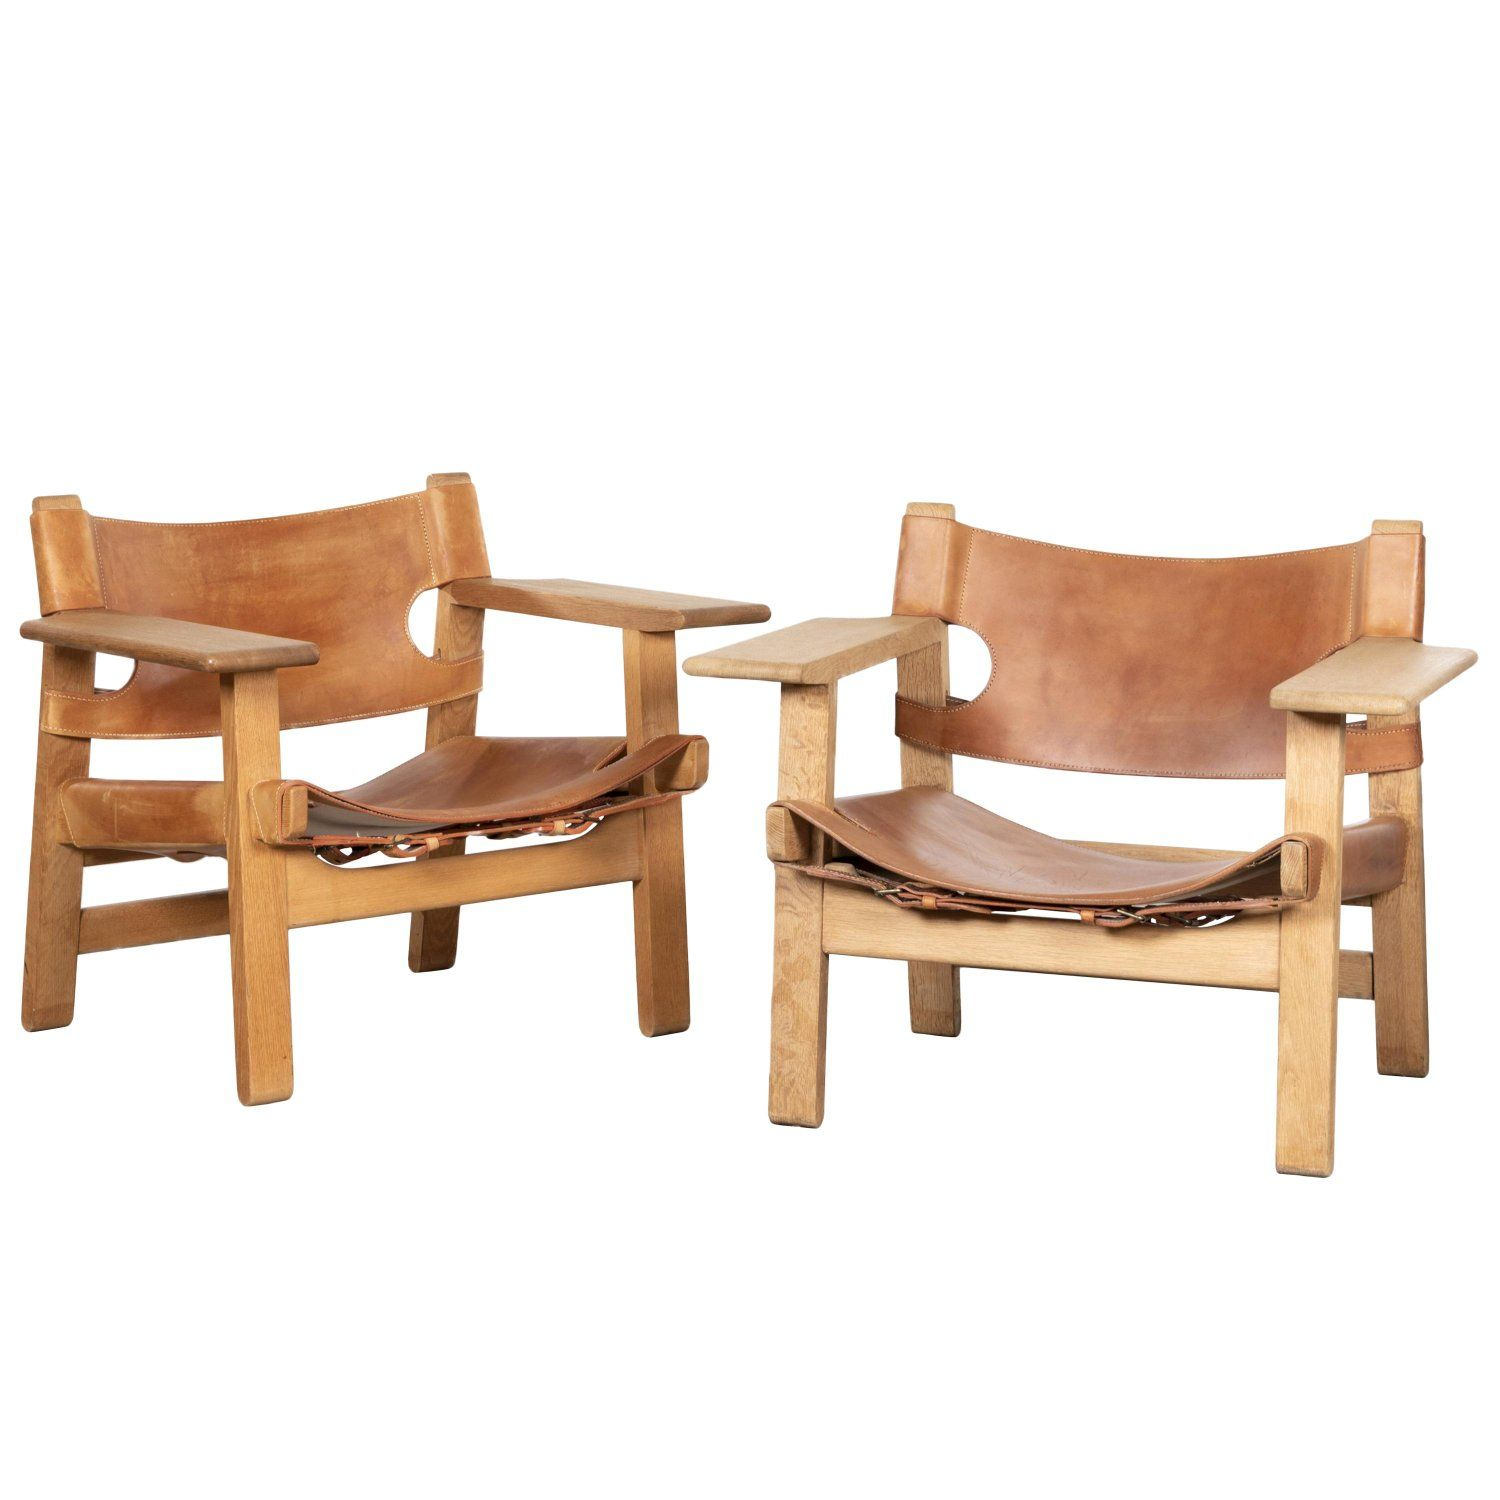 """Børge Mogensen """"Spanish"""" Chair in Cognac Leather and Oak"""